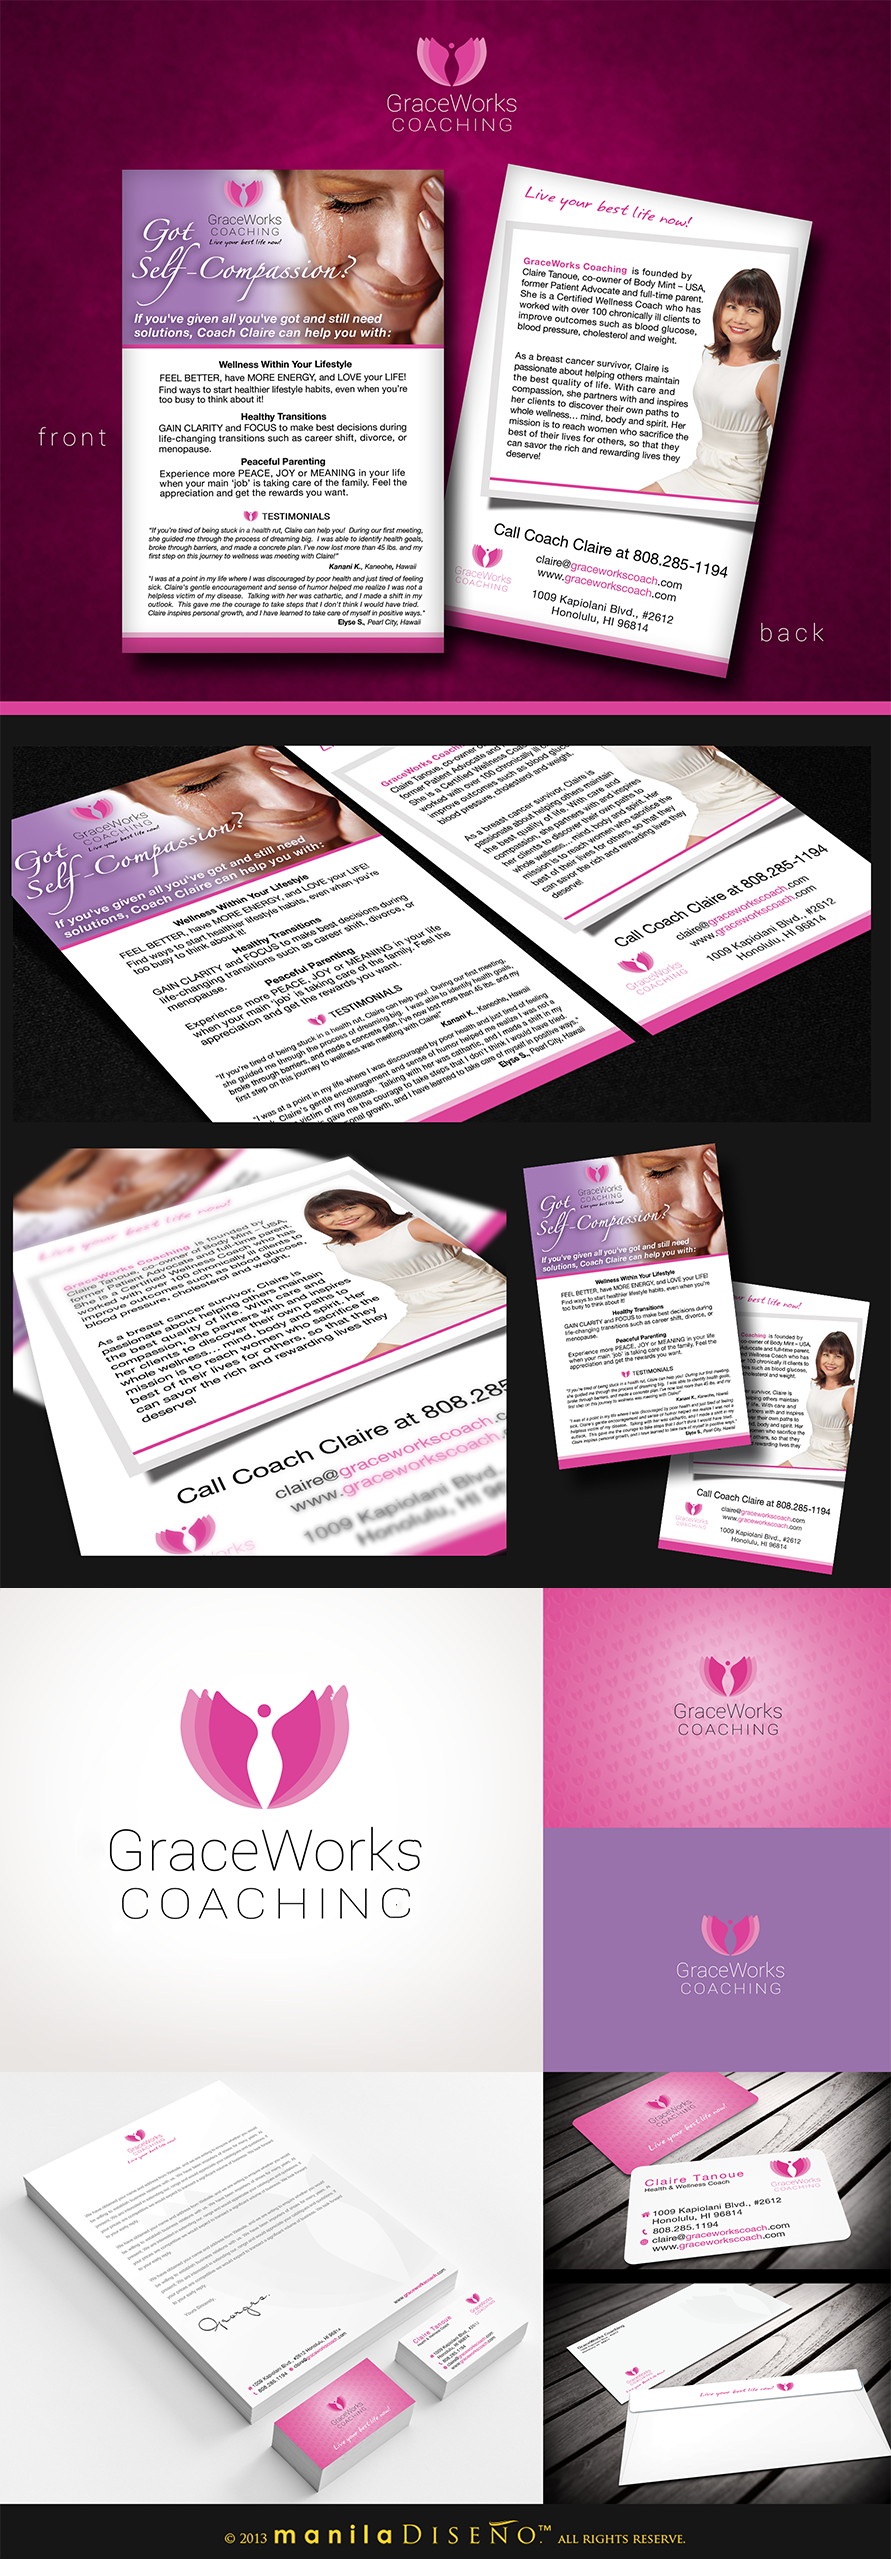 *Prize Guaranteed* Show your feminine side -- design GraceWorks Coaching launch collateral!